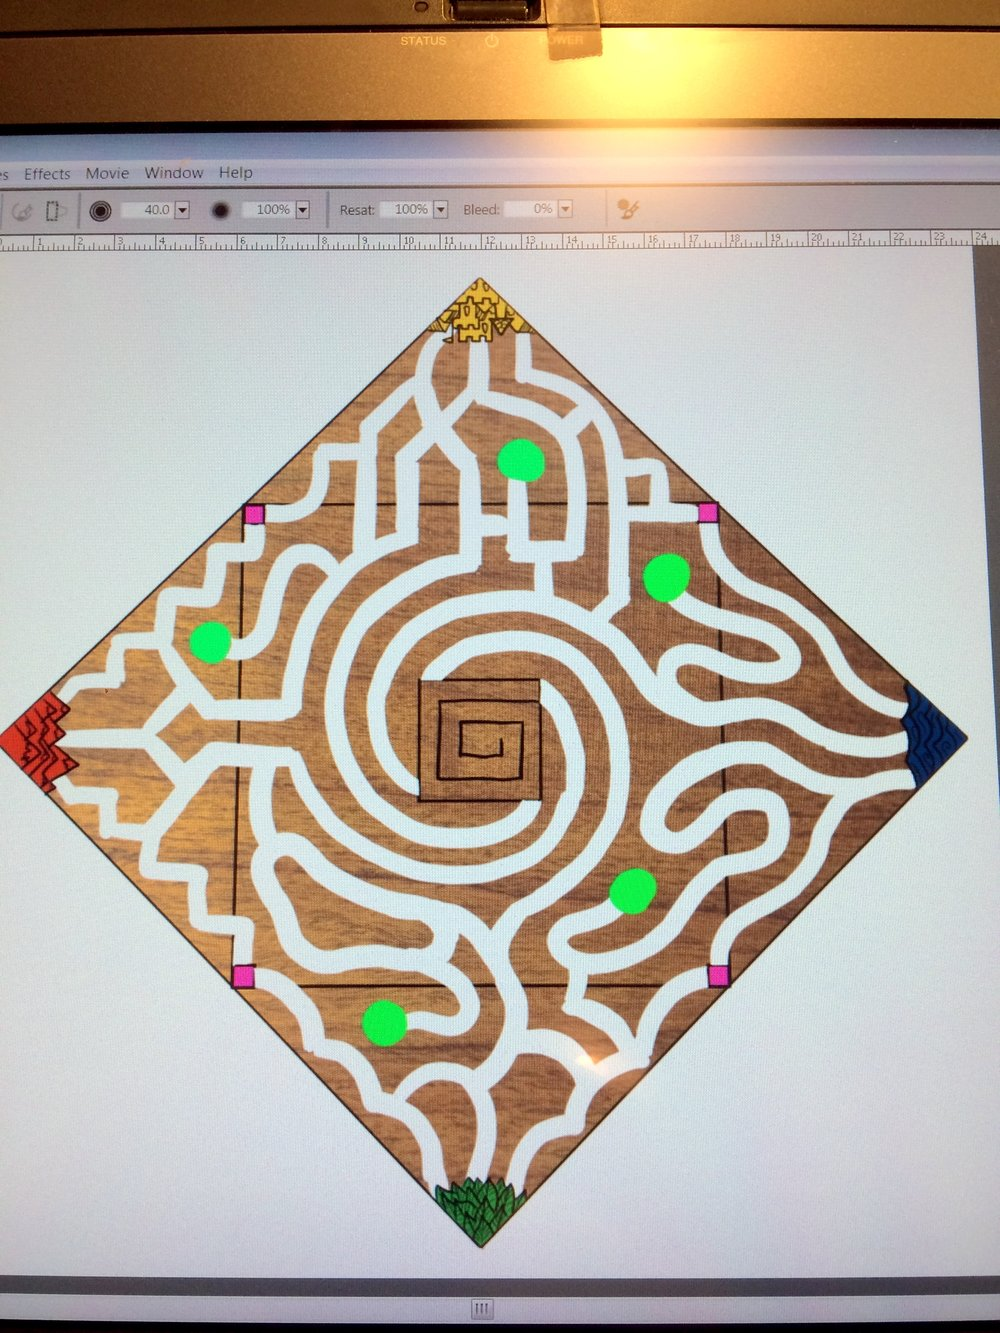 First computer mock-up of what the board might look like. (This is after dozens of paper sketches that all look like the scribblings of a lunatic trying to find his way out of a hedge maze.) The basic idea is that there are four territories, each with a distinctive style, that all meet up and spiral in toward the mountain.